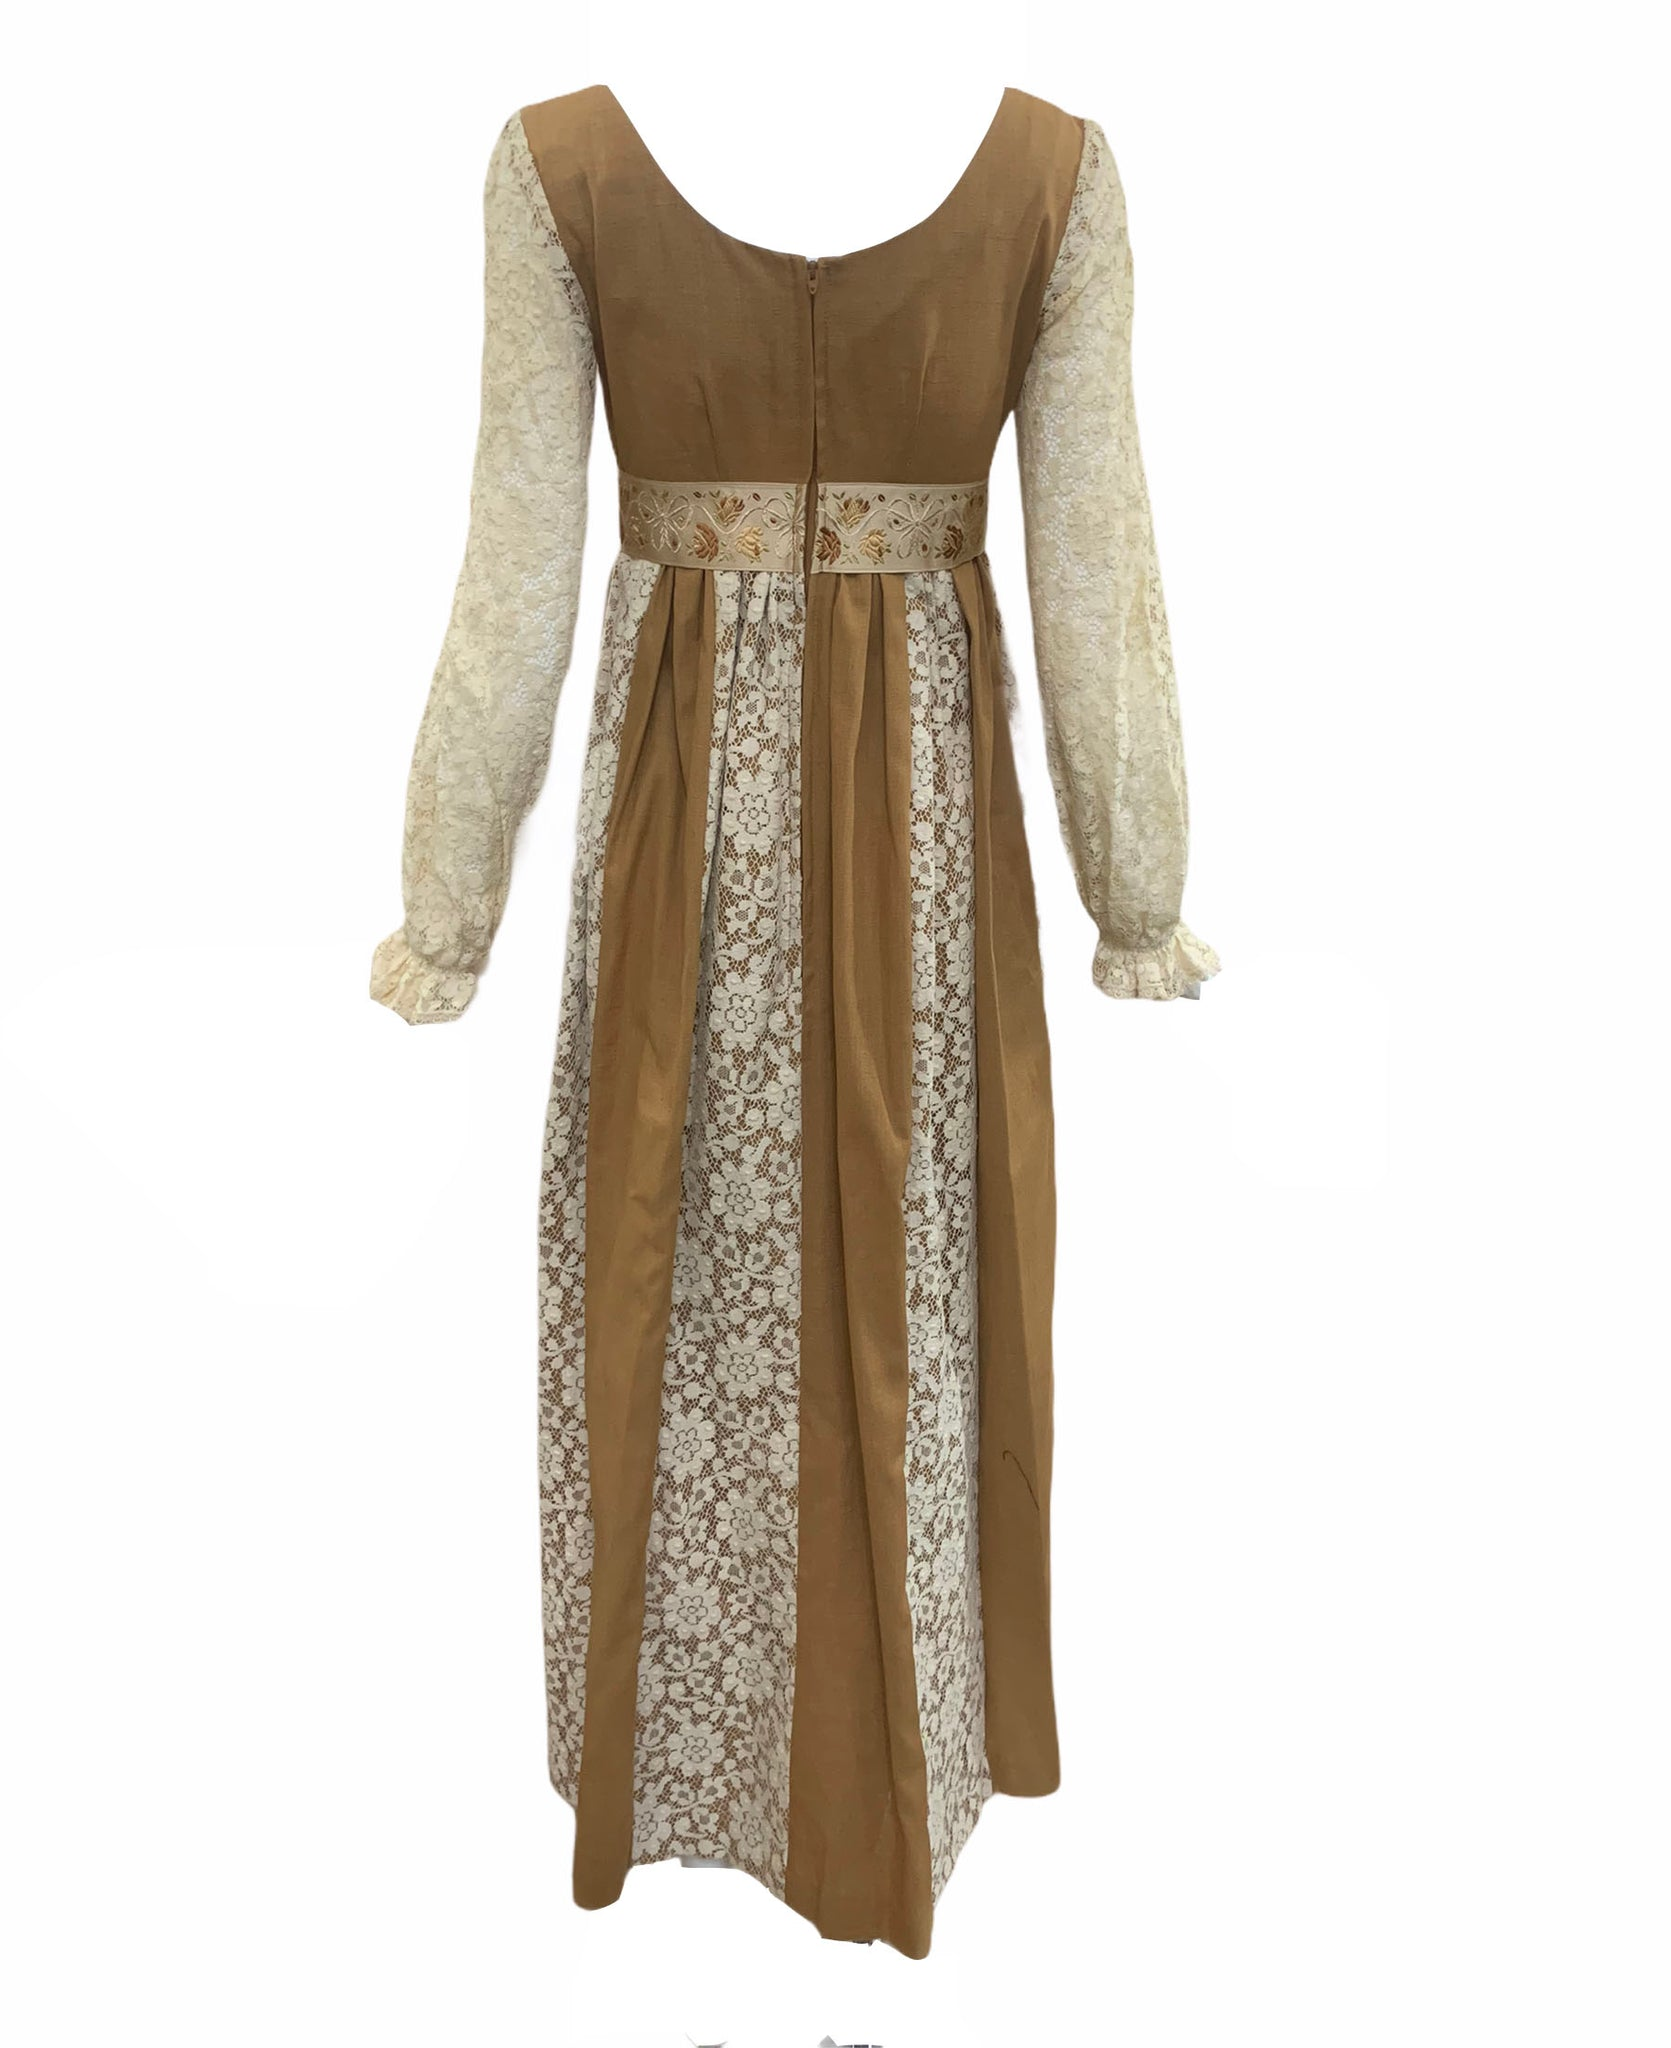 Couriers Golden Harvest 70s Princess Style Maxi BACK 2 of 5